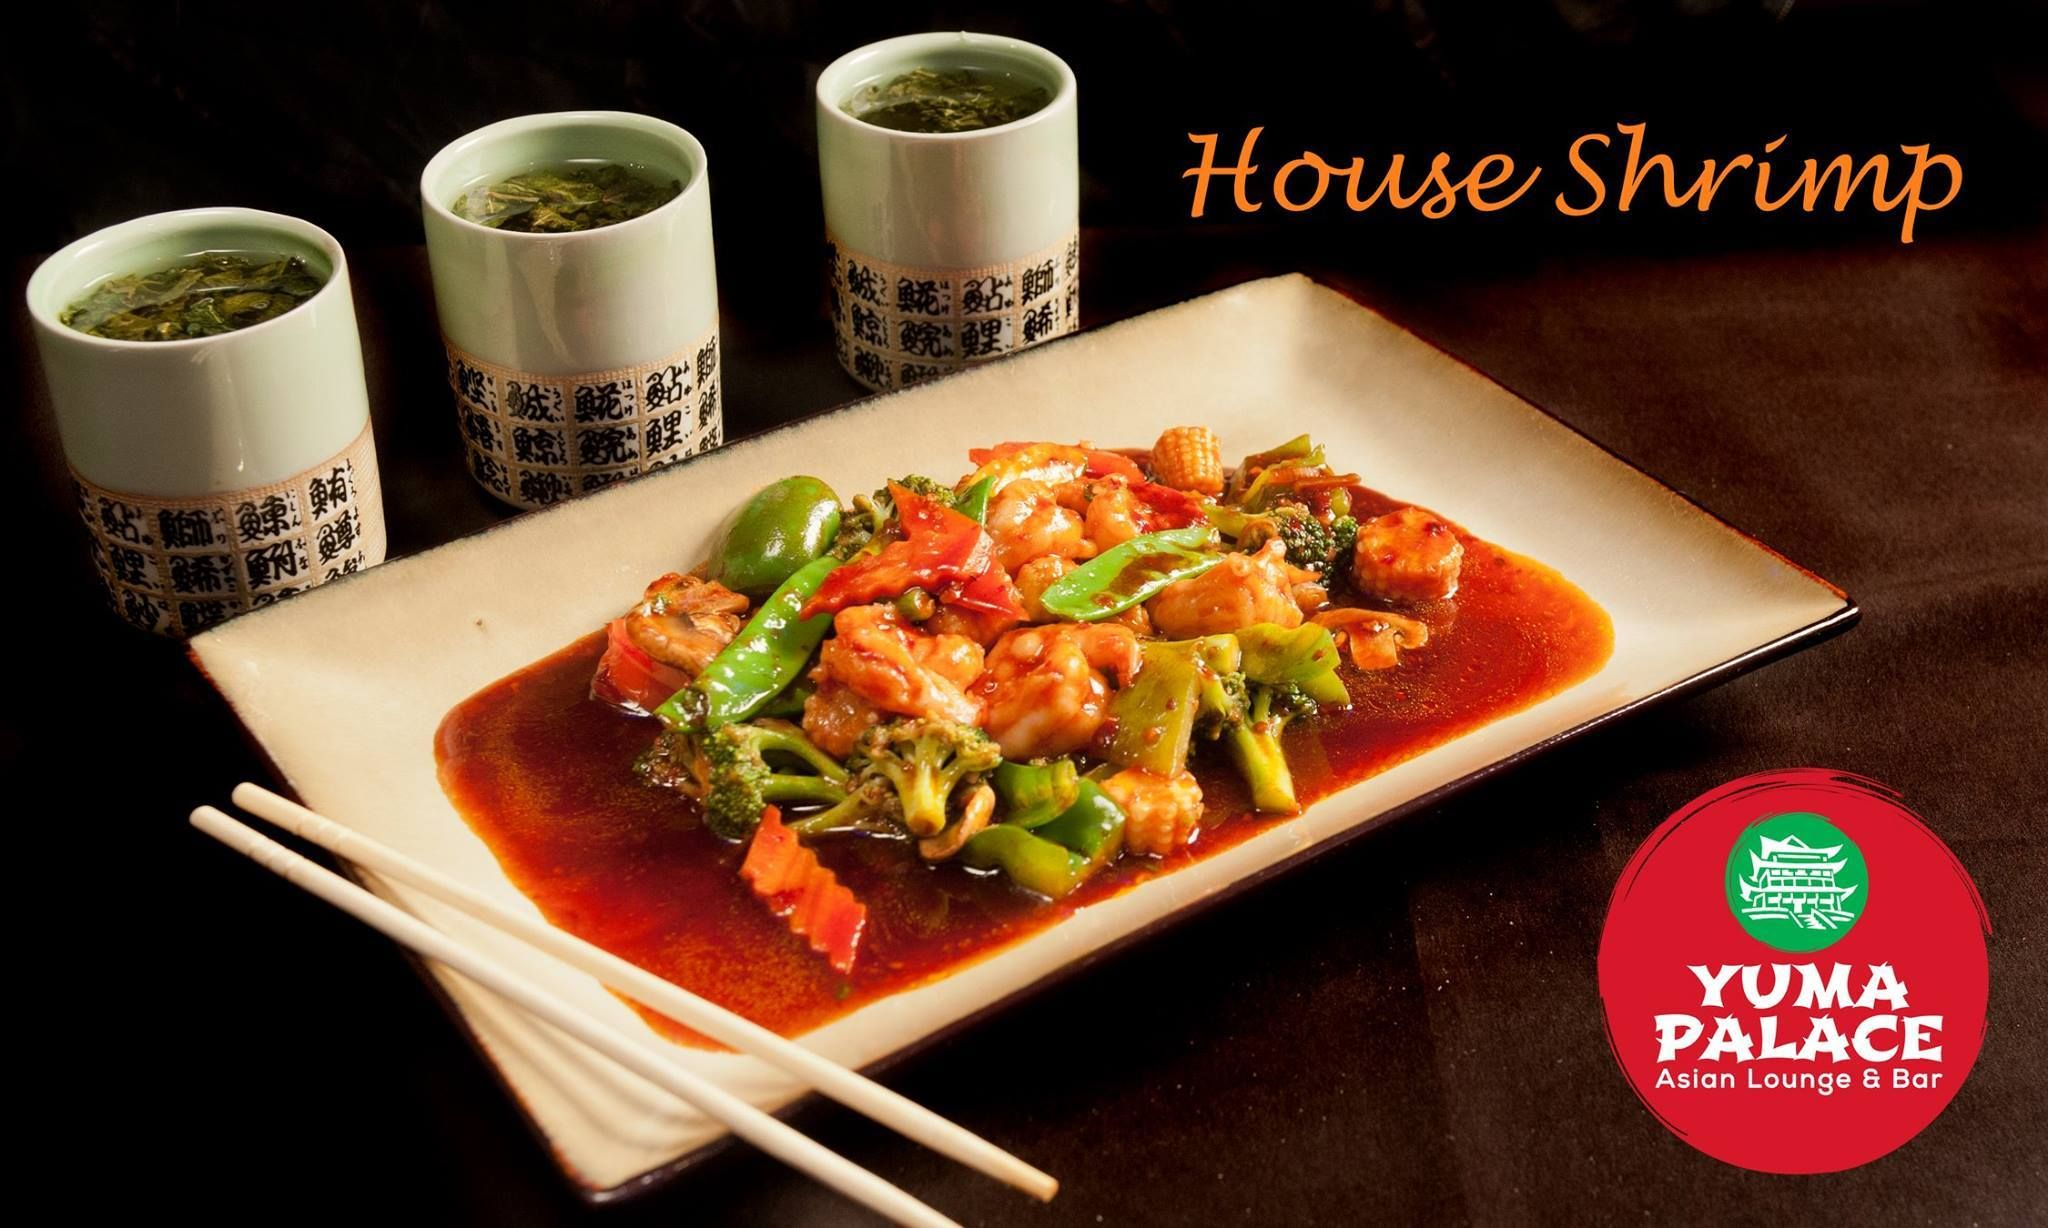 In the mood for some yummy chinese food? Look no further come to Yuma Palace!